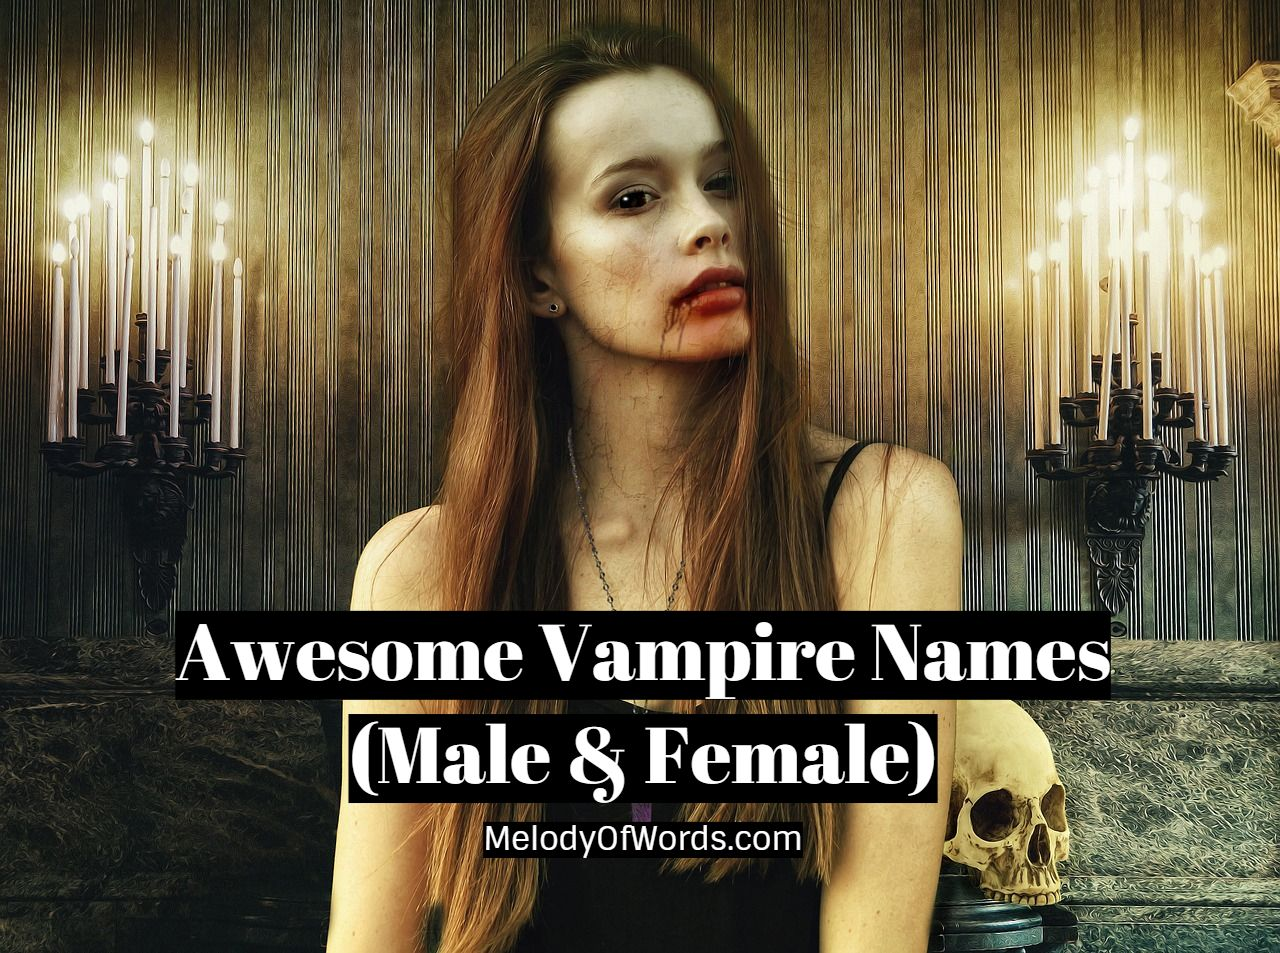 Awesome Vampire Names (Male & Female)